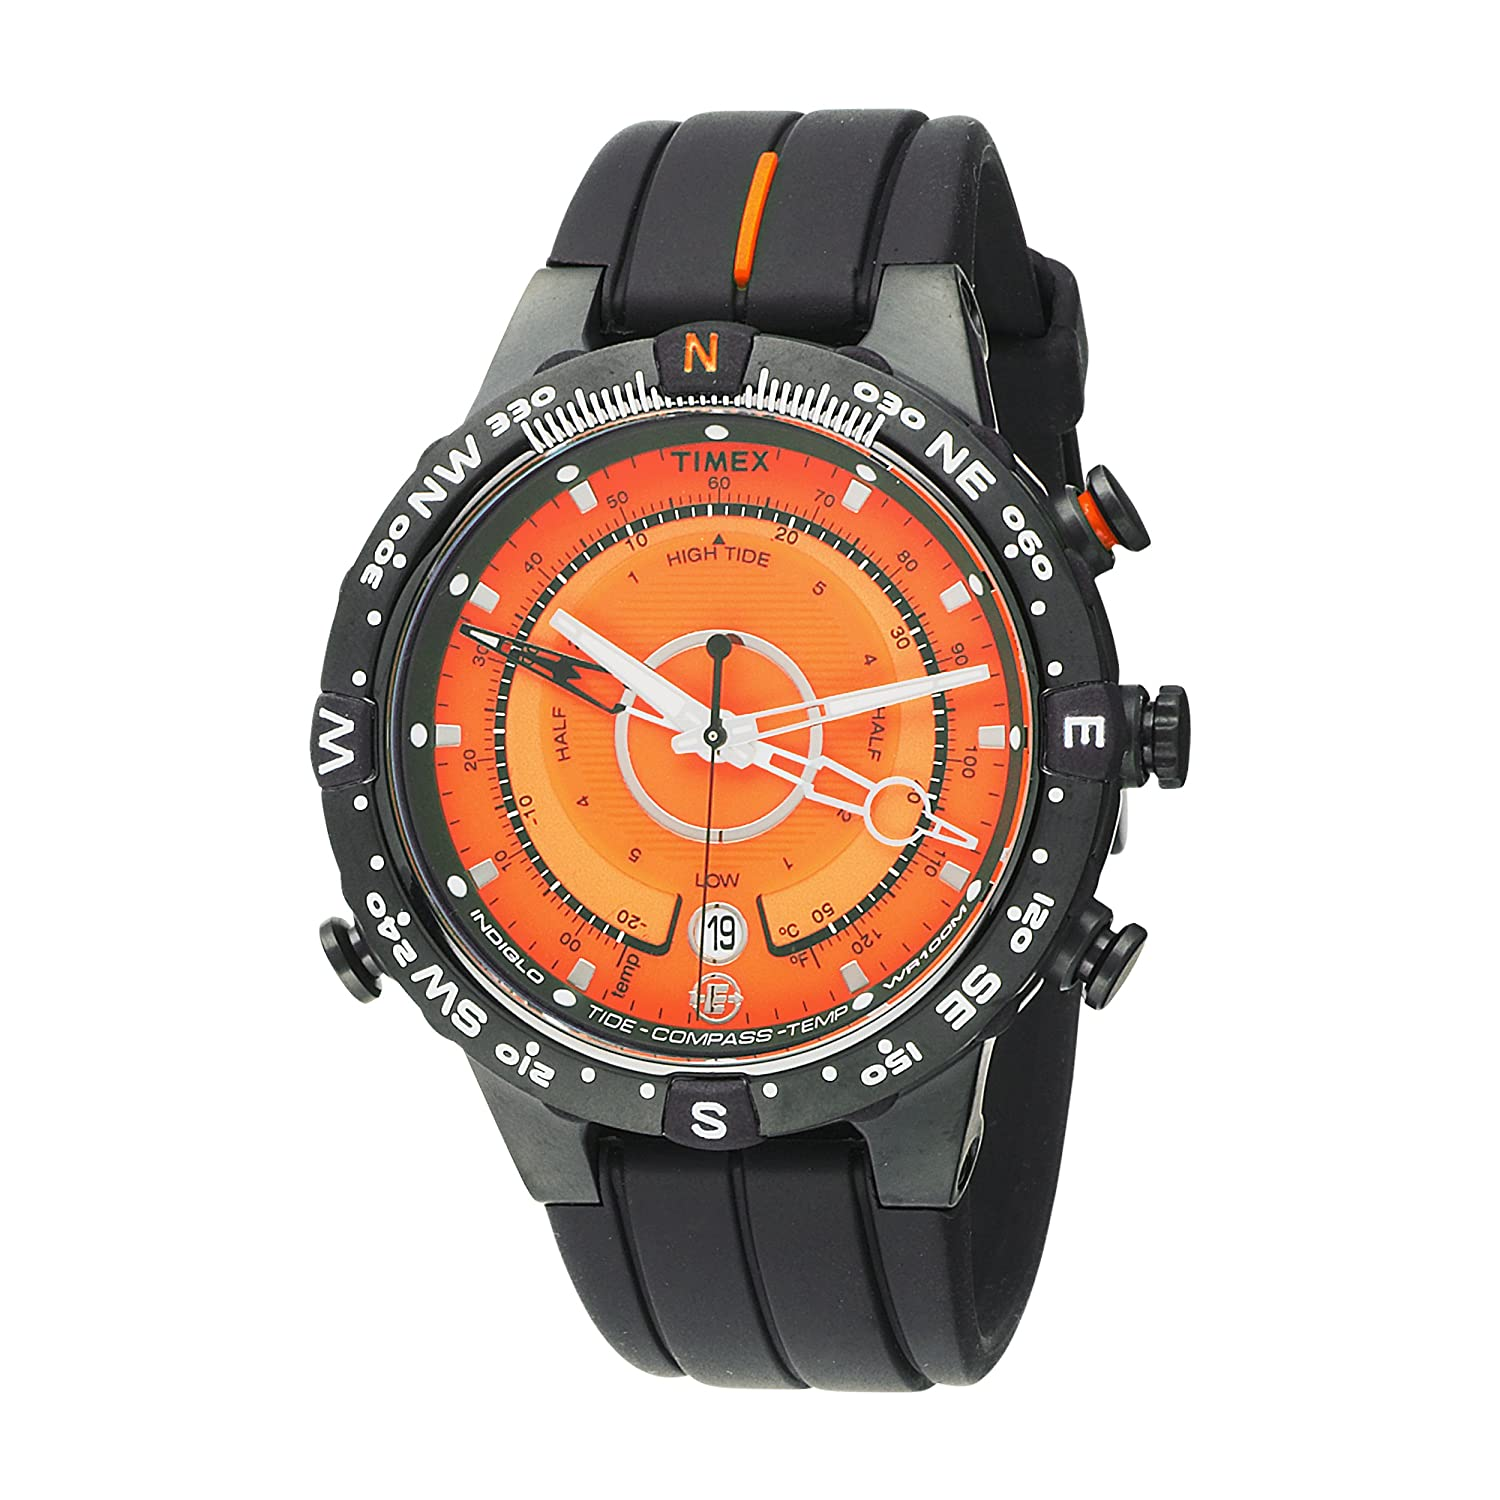 Amazon.com: Timex Mens T49706 E-InstrumentsTM Black Case and Resin Strap E-Tide-Temp-Compass Expedition Watch: Timex: Watches